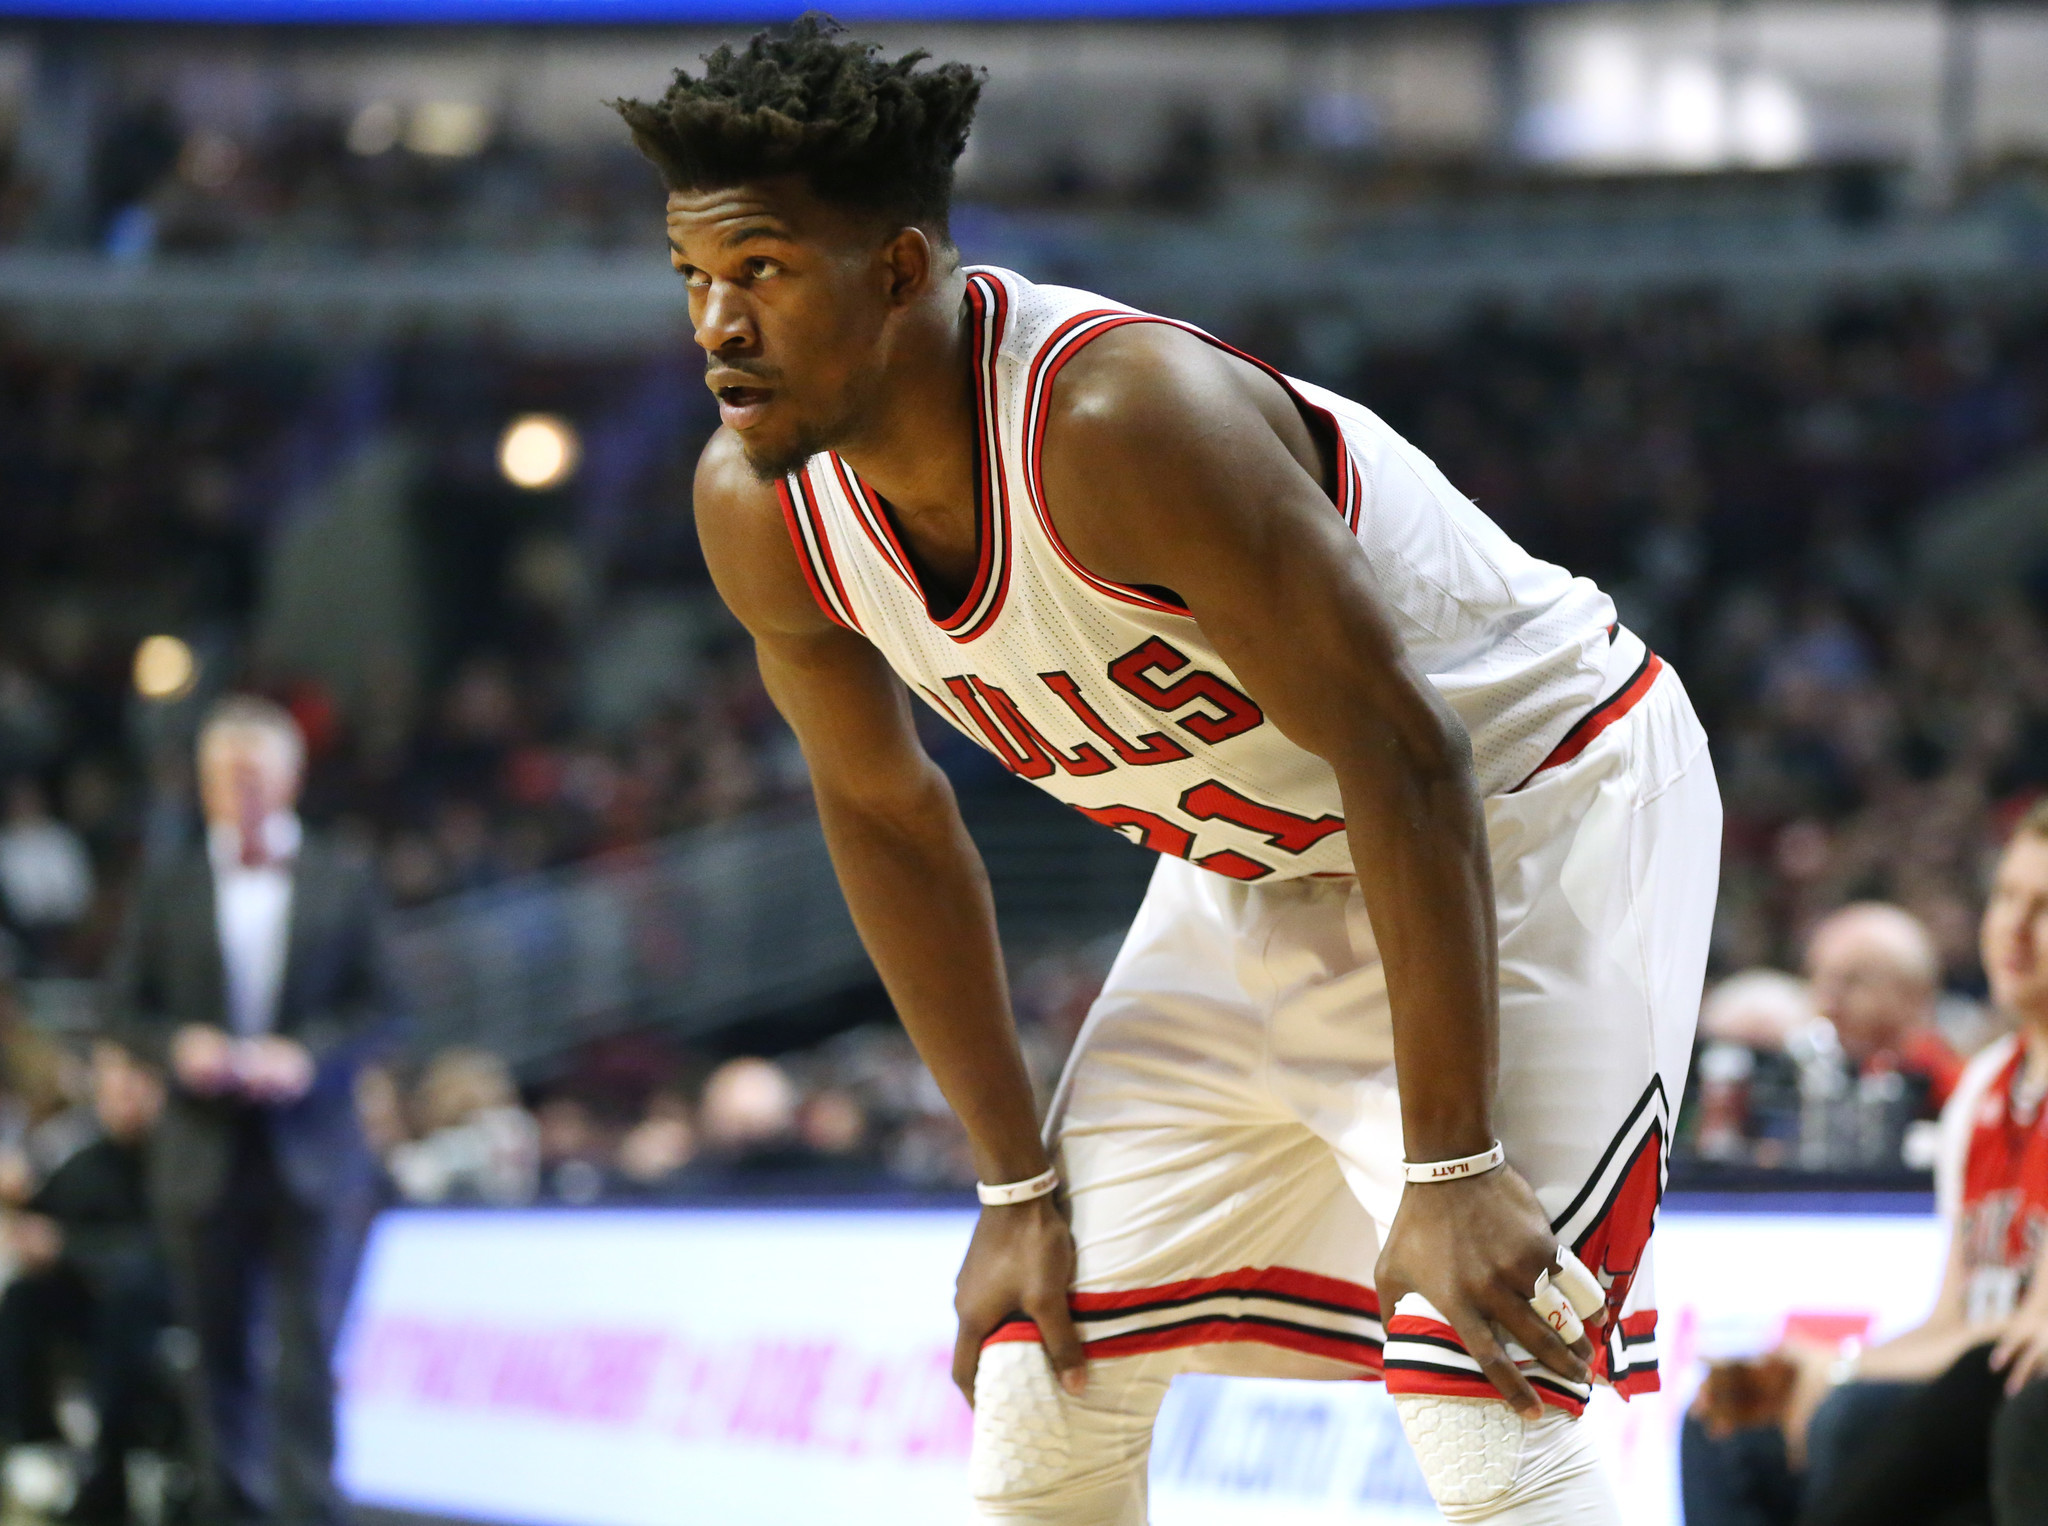 A critical Bulls offseason could feature subtle changes in front